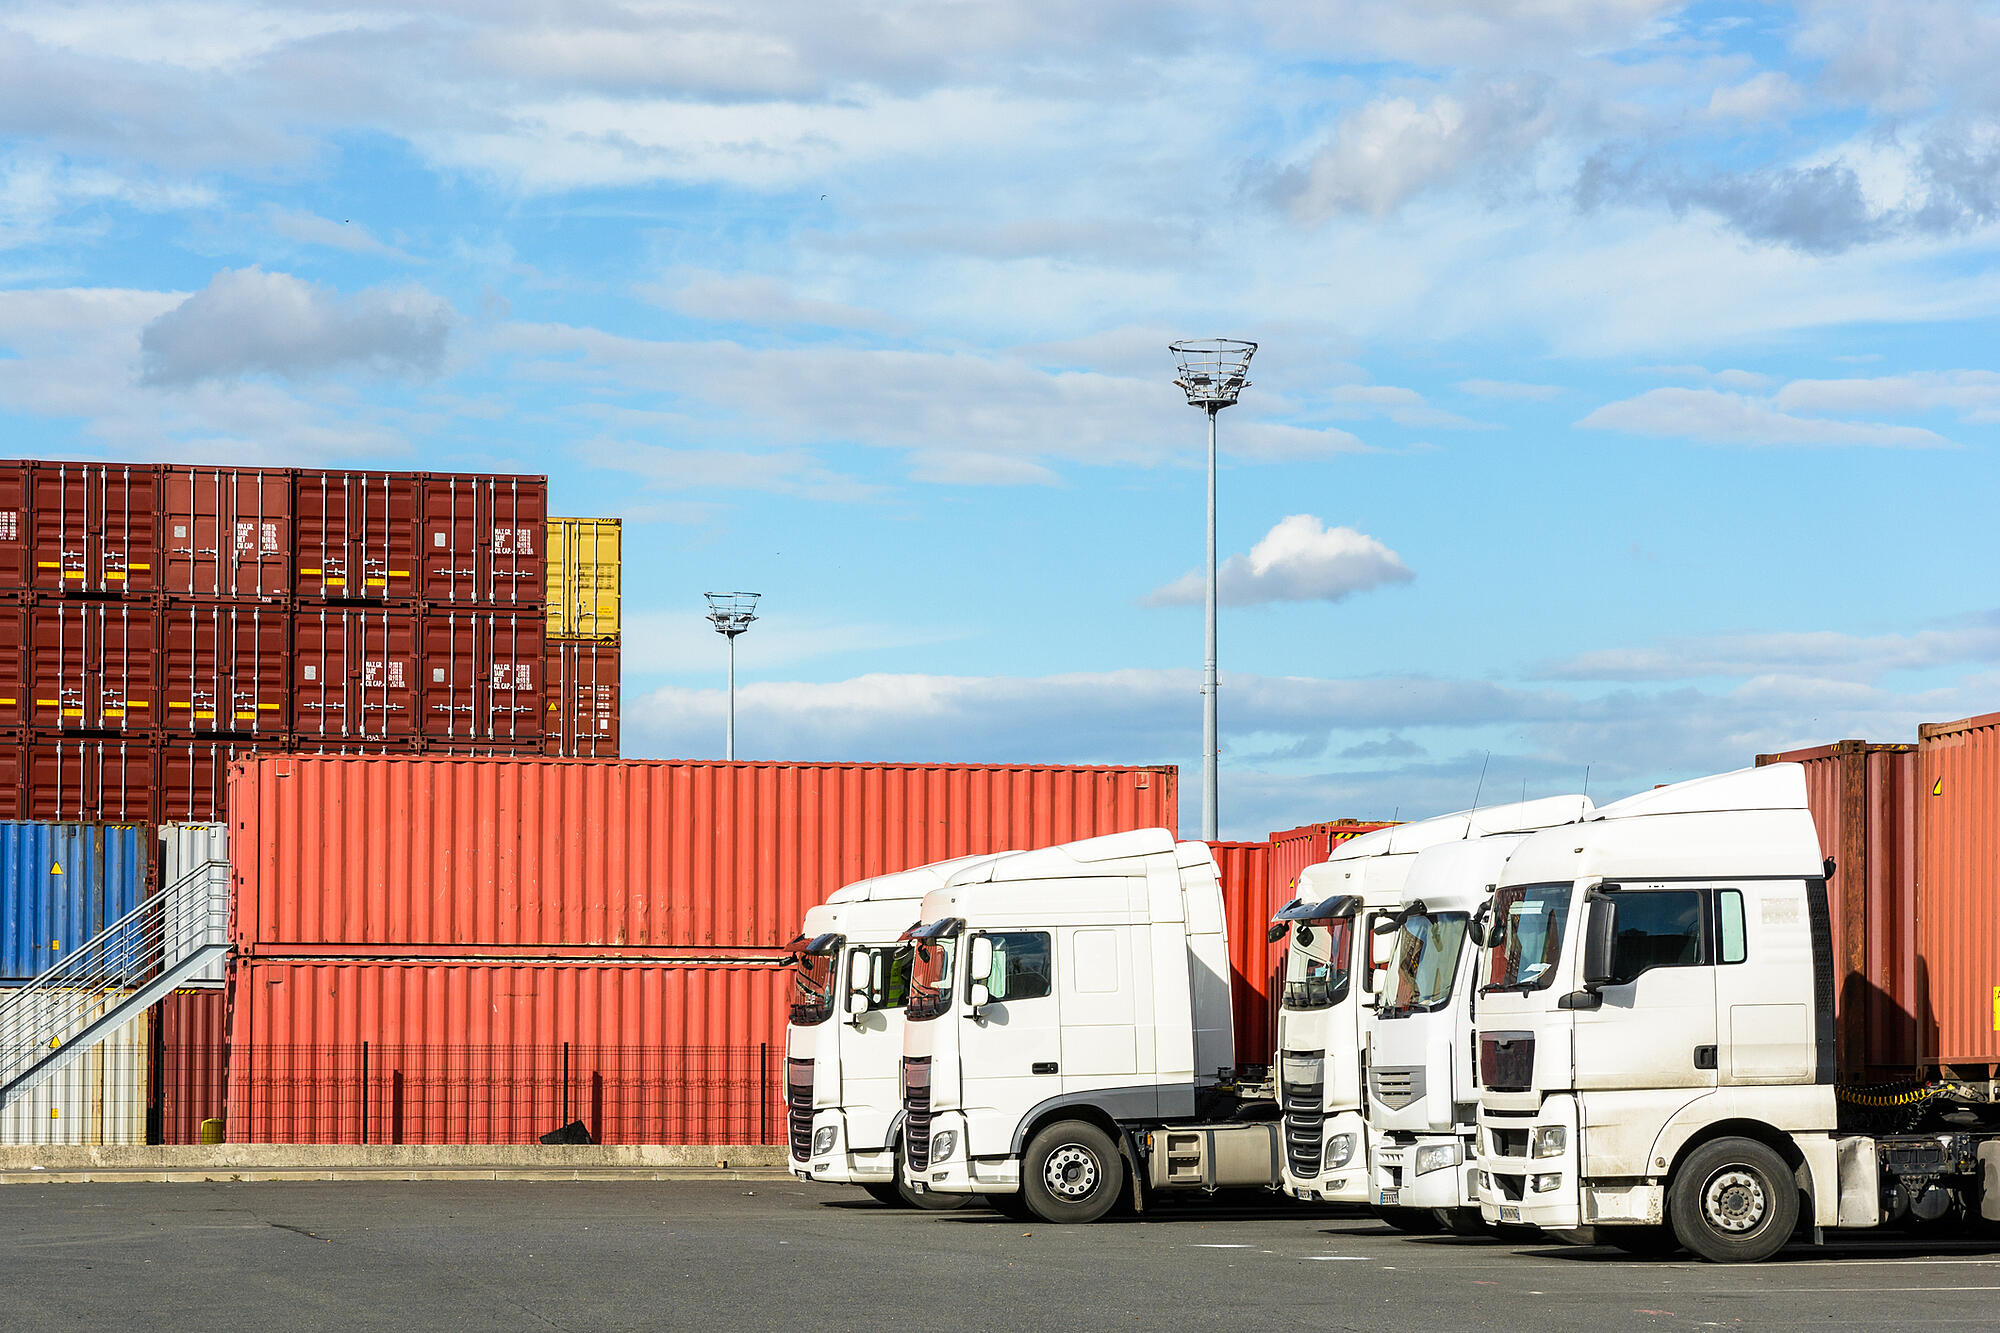 Trucks for last mile delivery